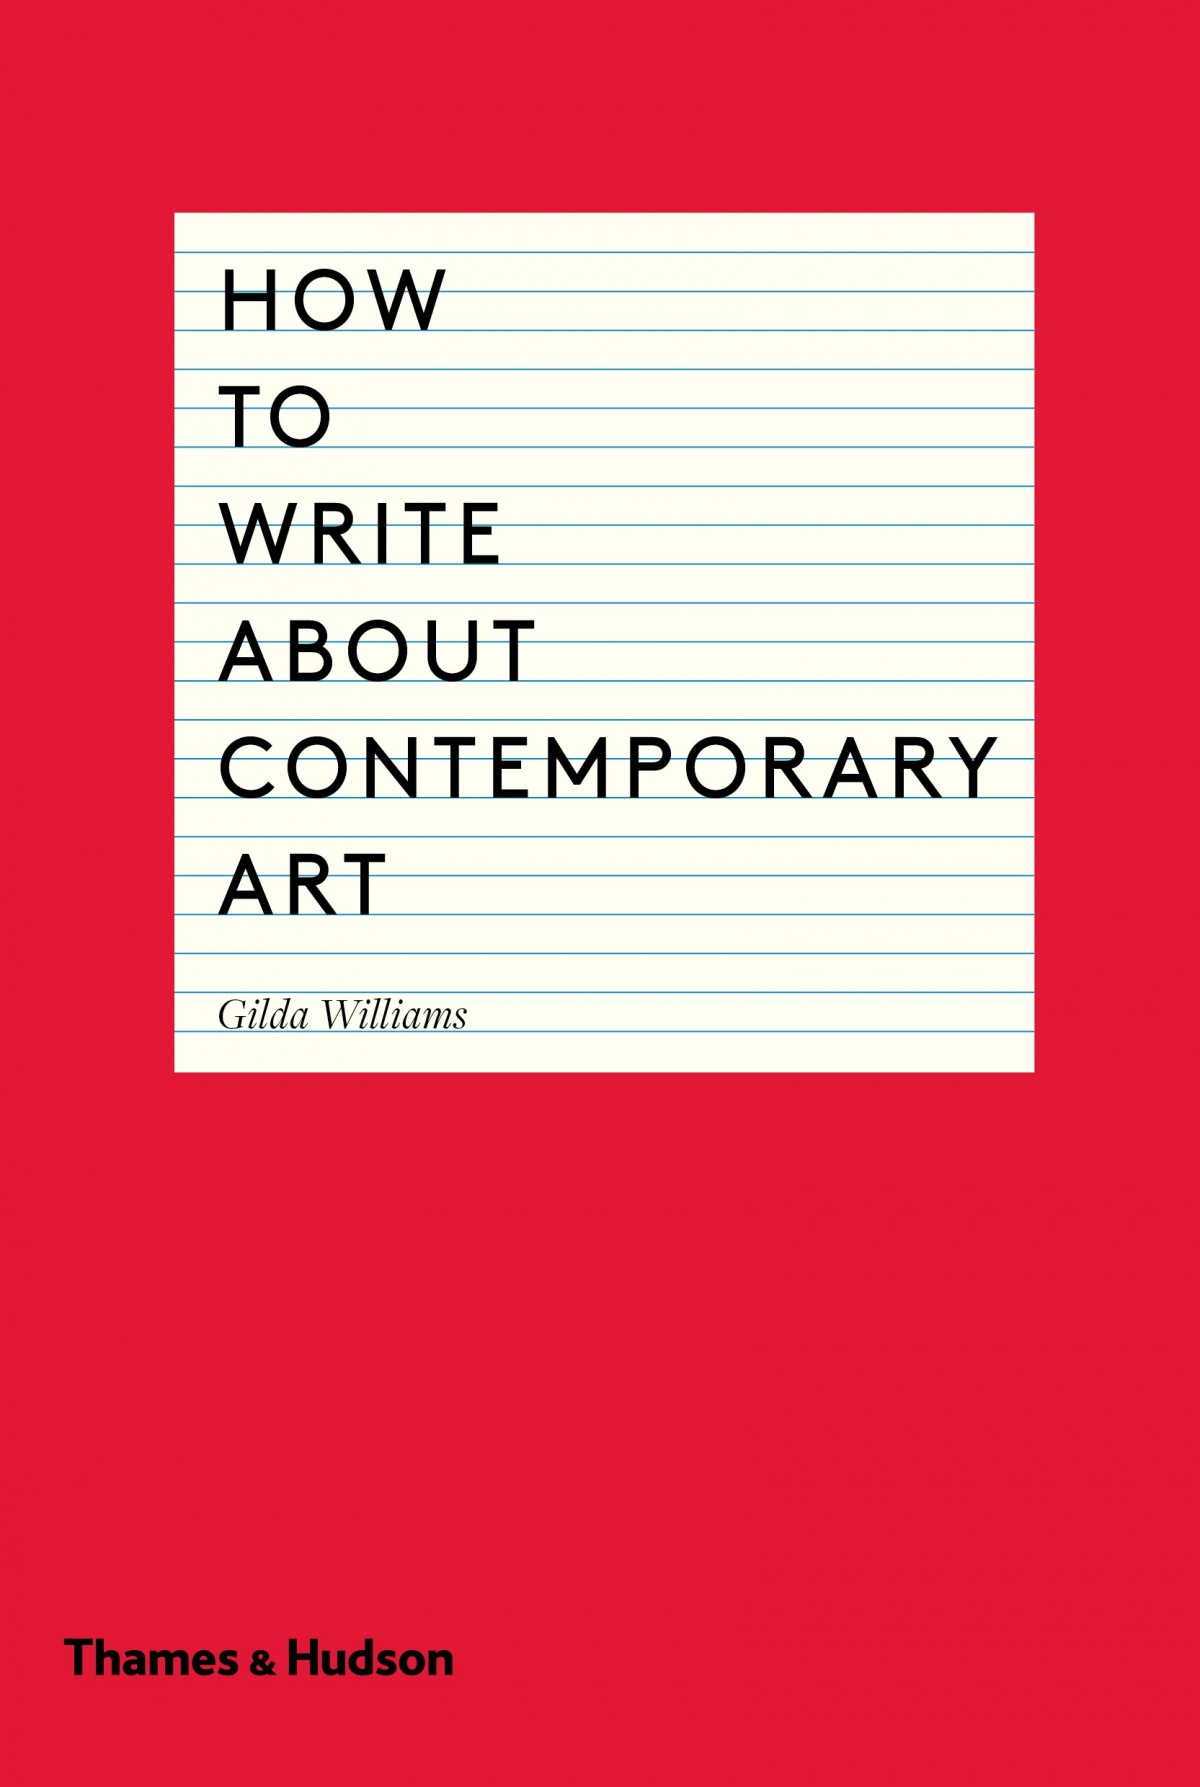 How to Write About Contemporary Art Gilda Williams